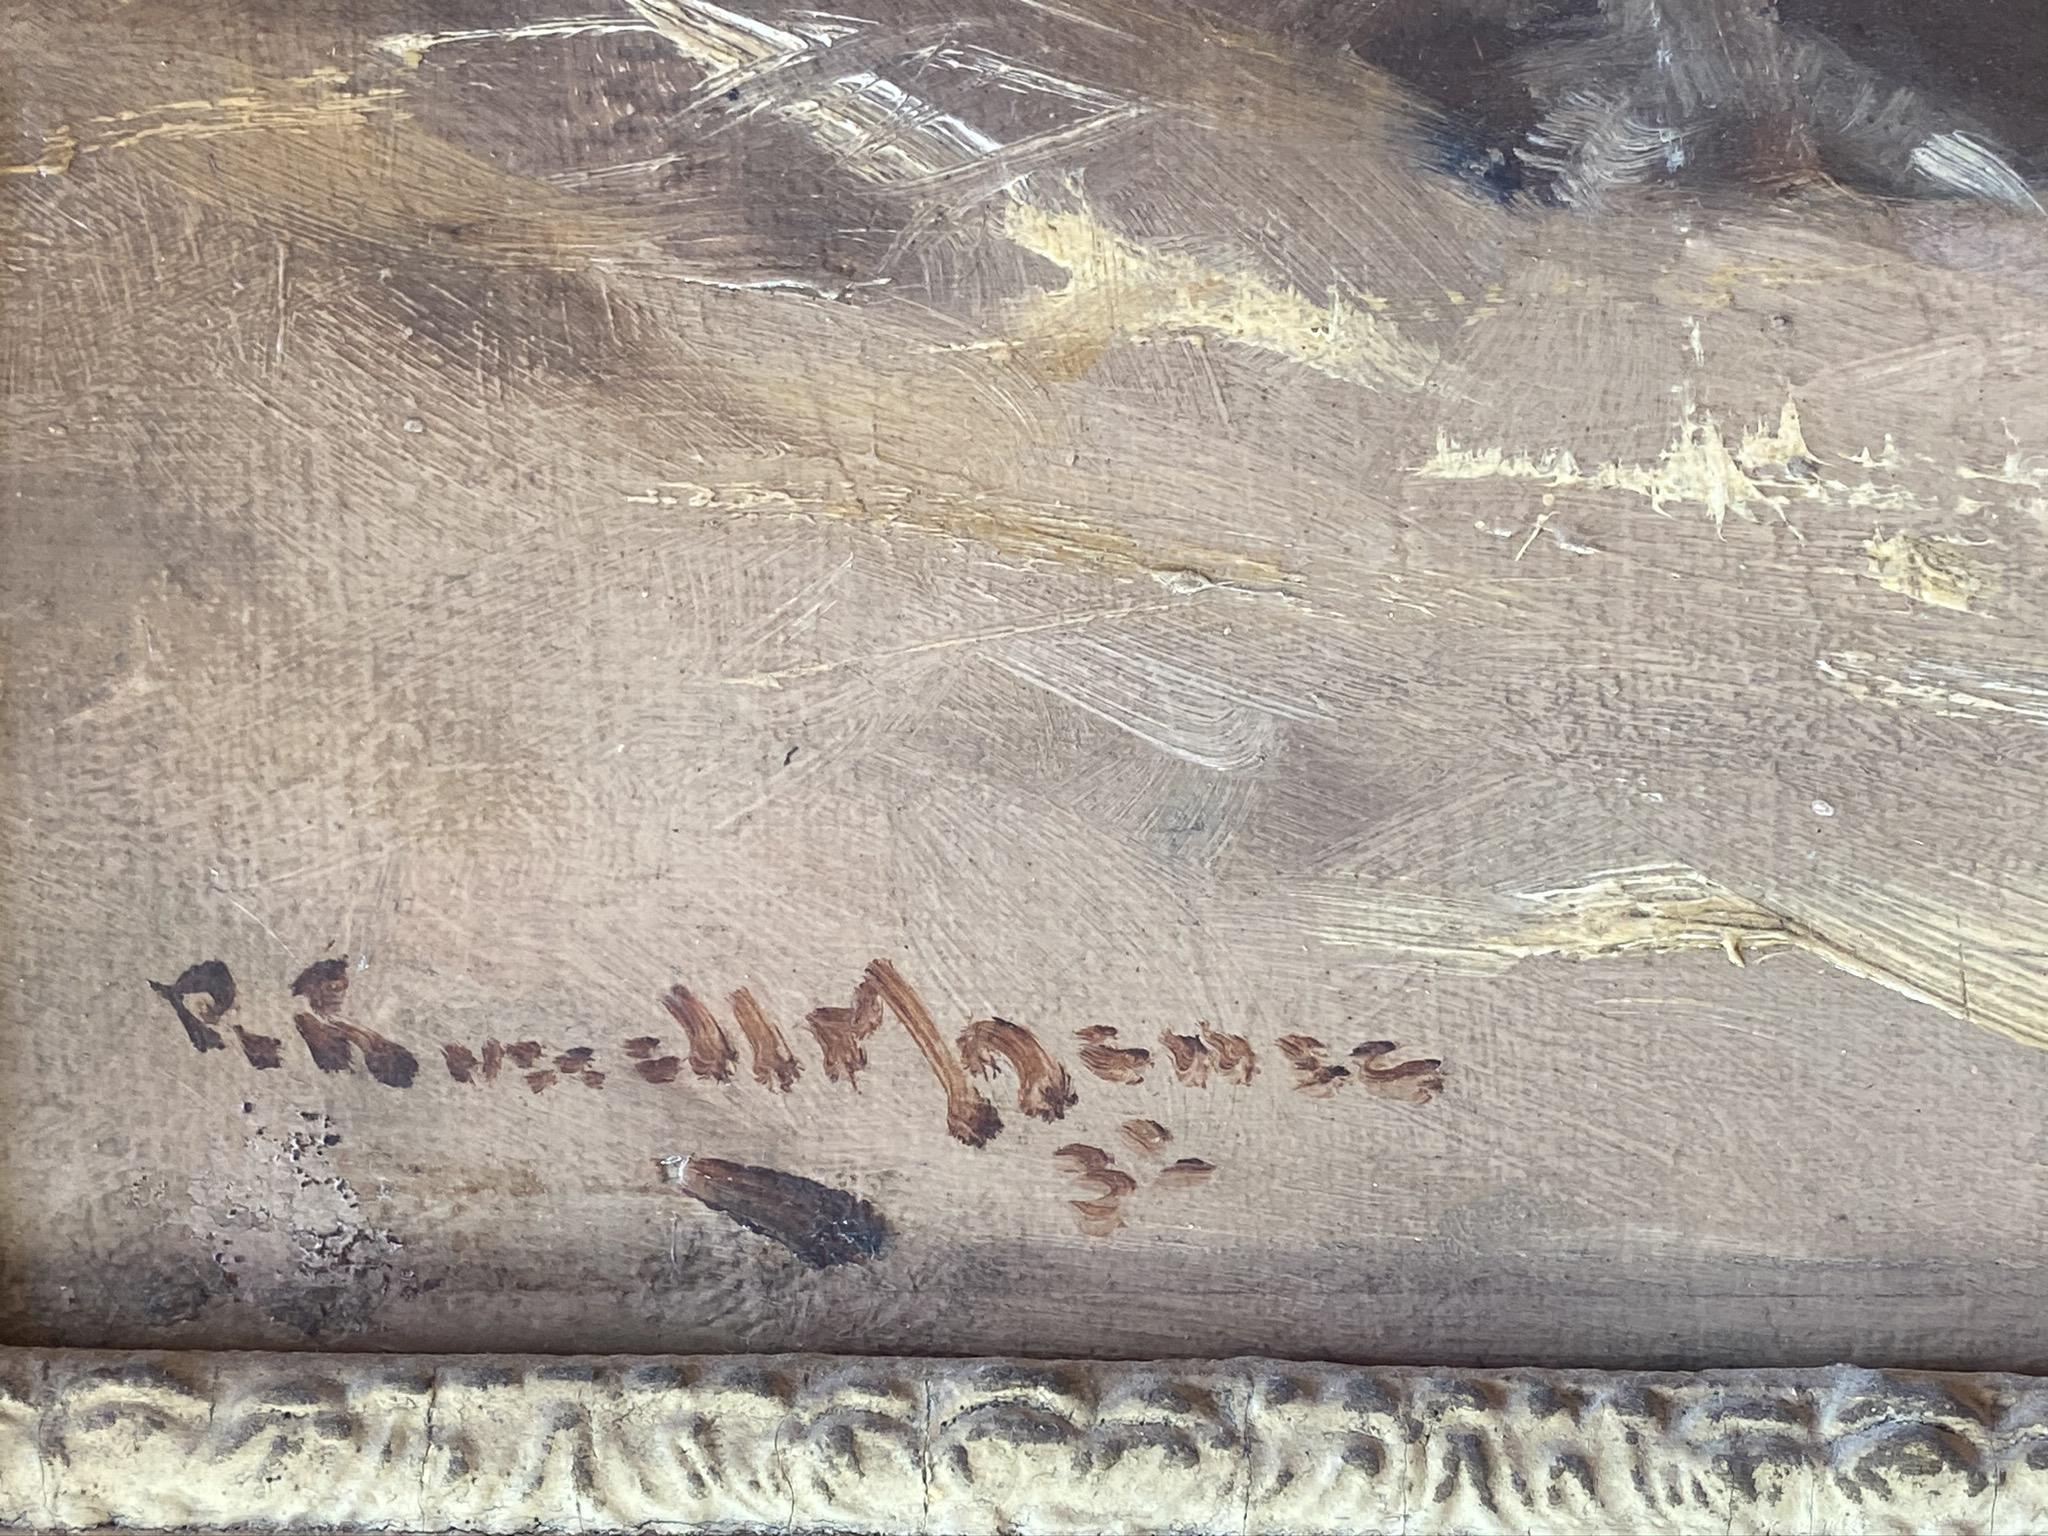 Original Signed Oil Painting. Robert Russel MacNee, 1880-1952 - On The Farm - Image 3 of 4